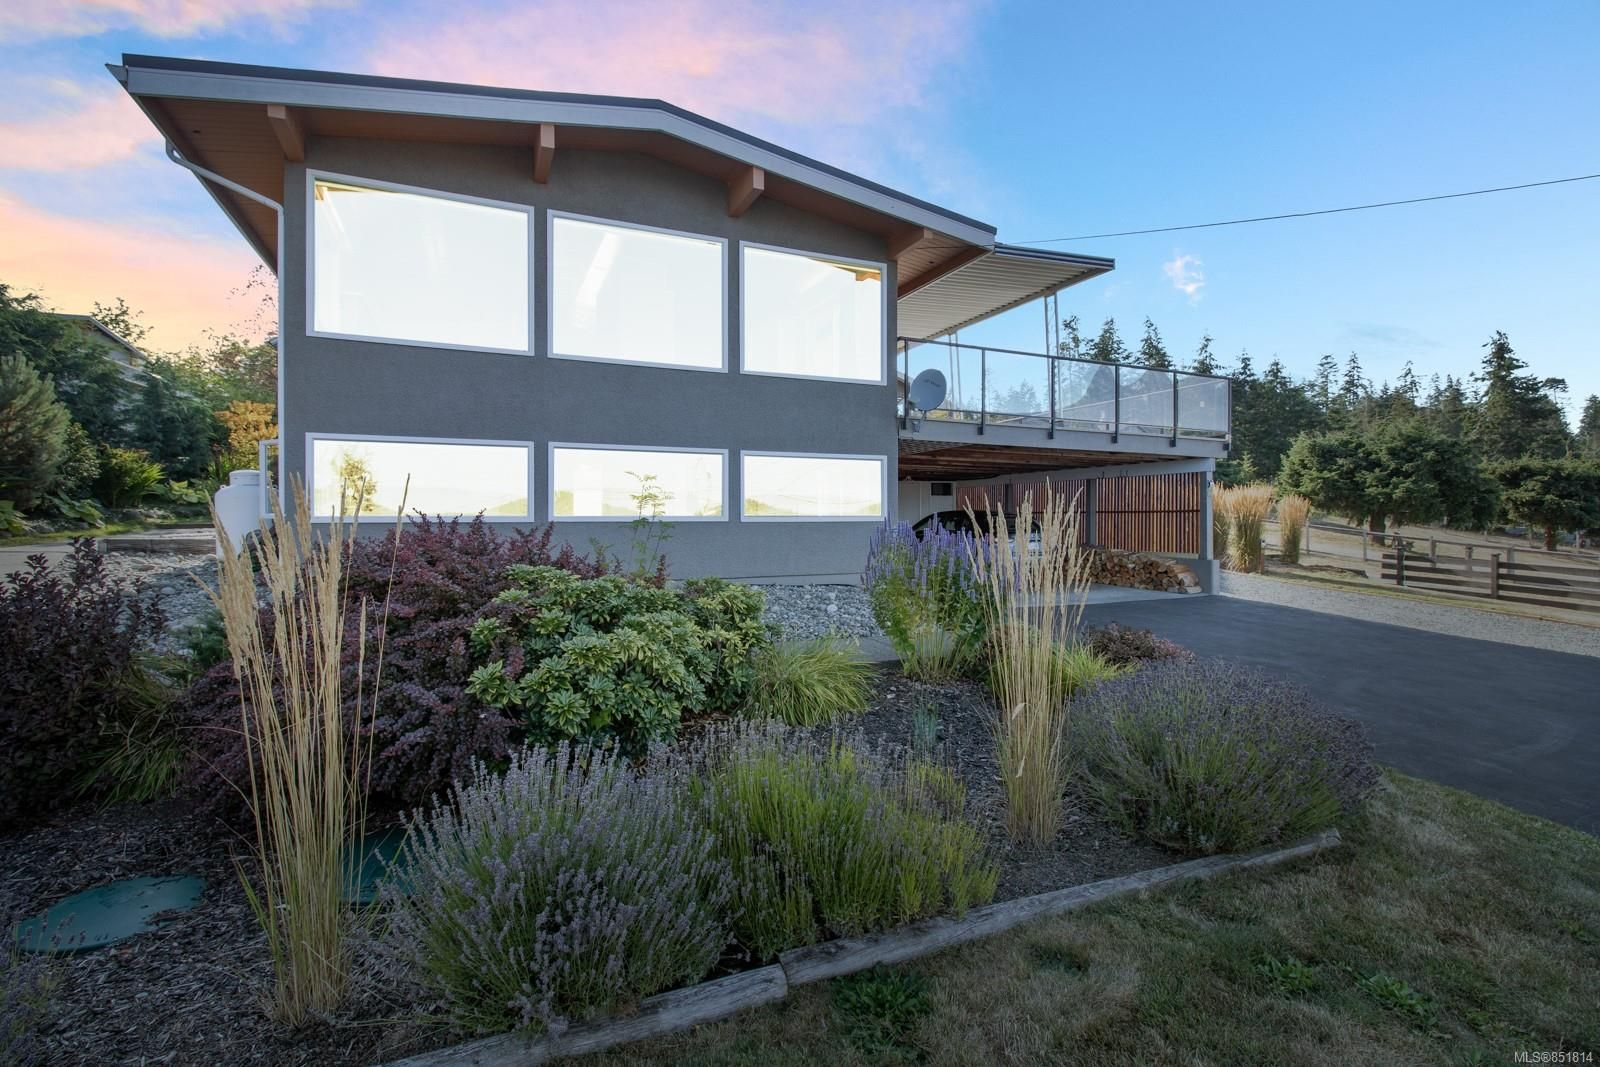 Photo 66: Photos: 191 Muschamp Rd in : CV Union Bay/Fanny Bay House for sale (Comox Valley)  : MLS®# 851814